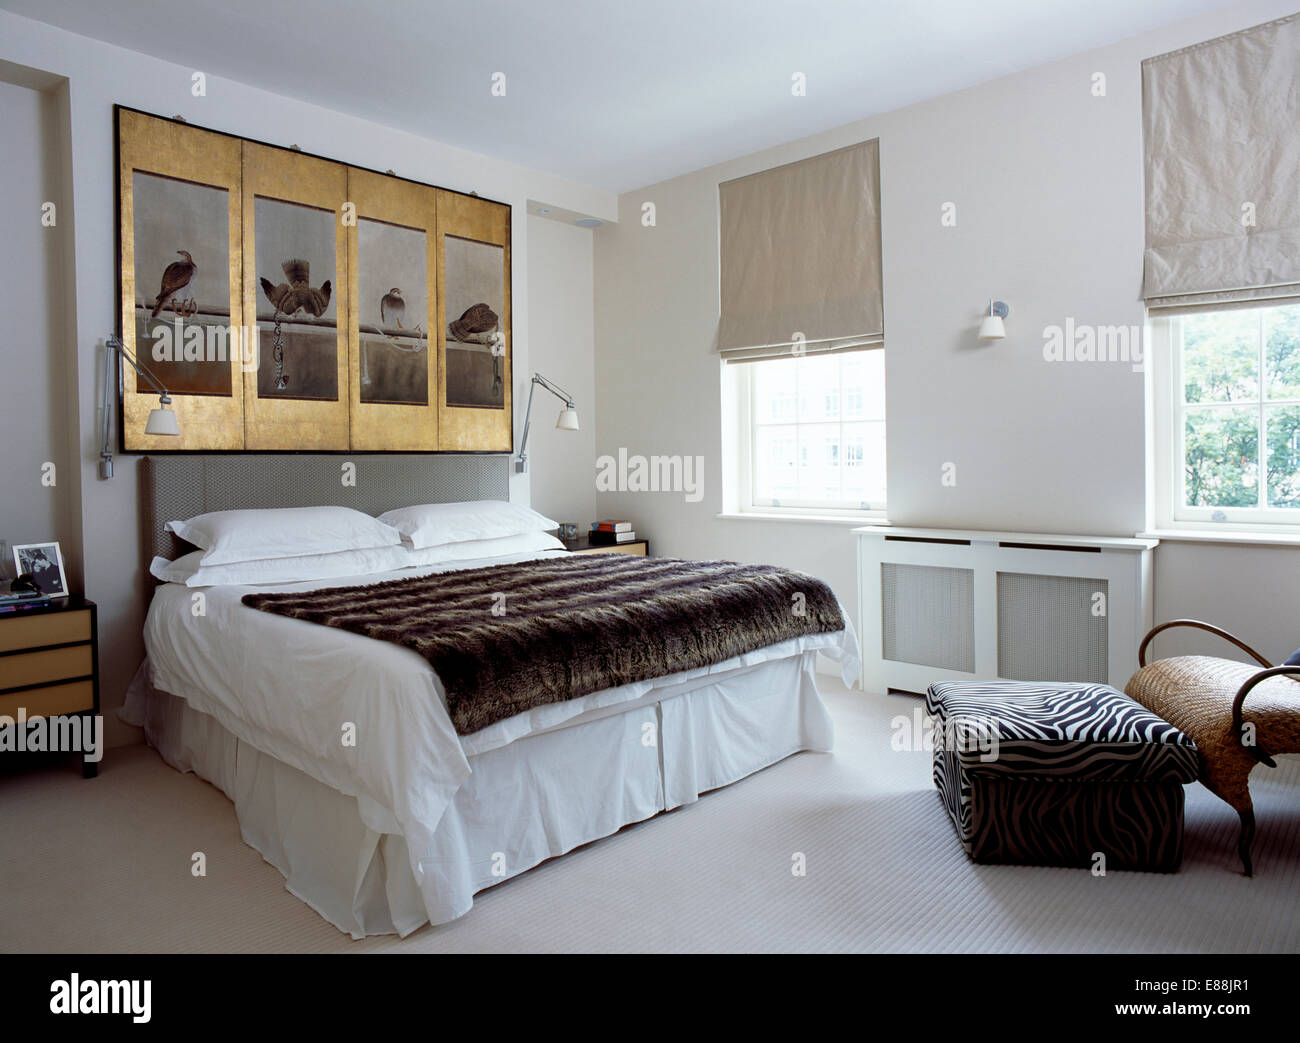 Modern Bedroom Blinds Gilt Framed Antique Panels Above Bed With Faux Fur Throw And White